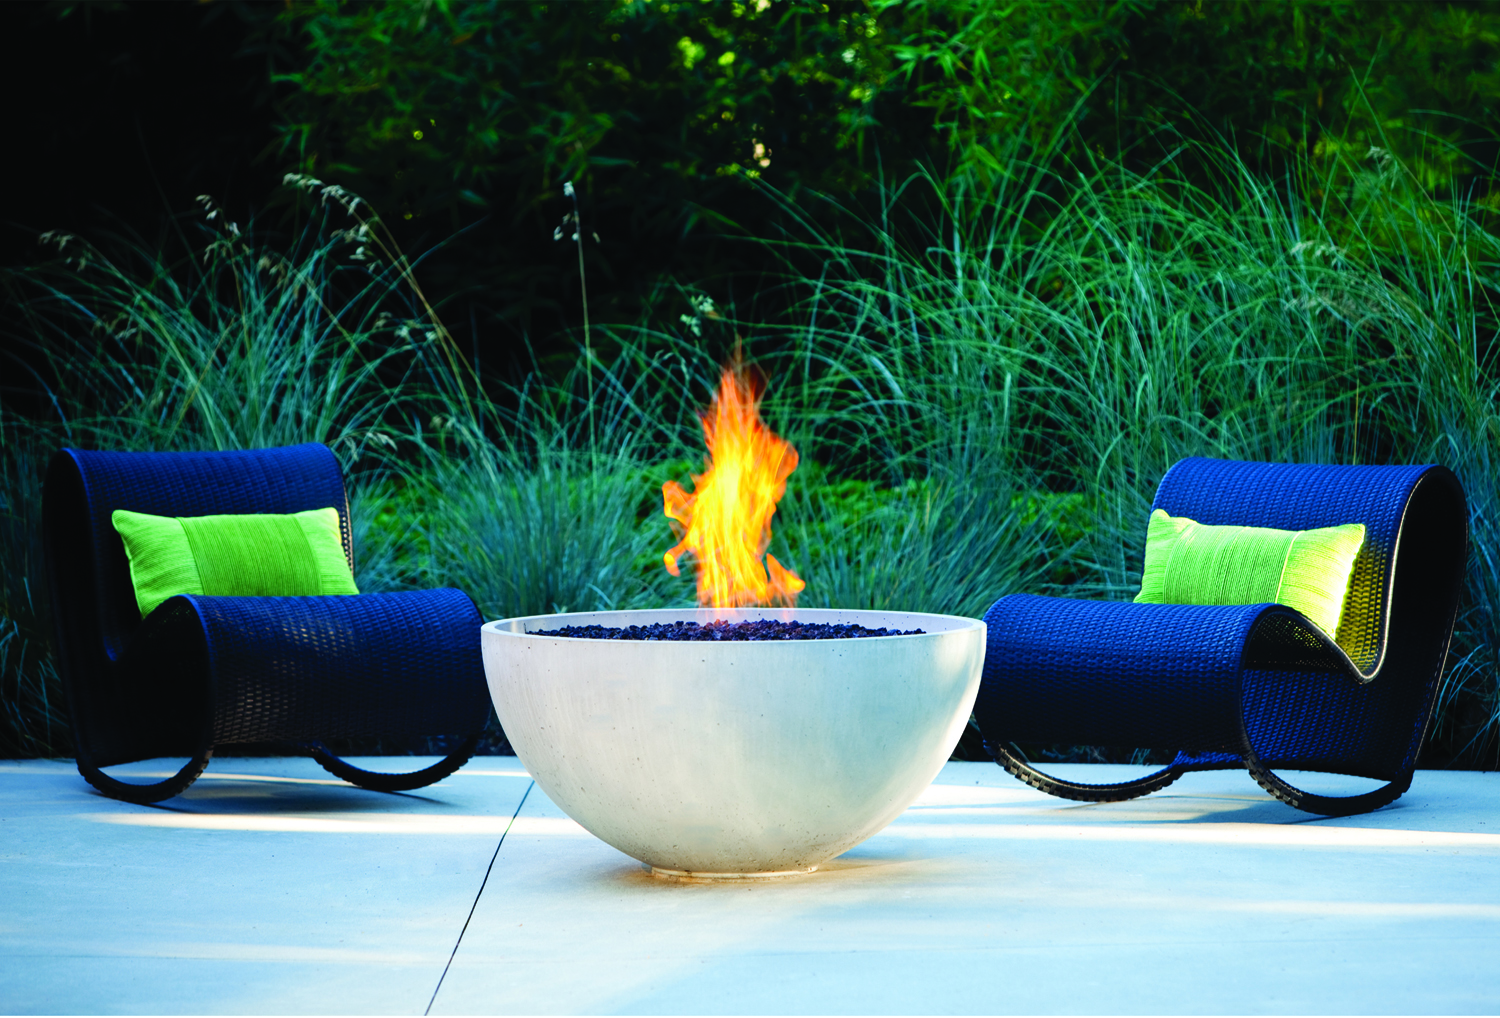 Ab8 round outdoor fireplace burners fireplace kits for Outdoor modern fire pit